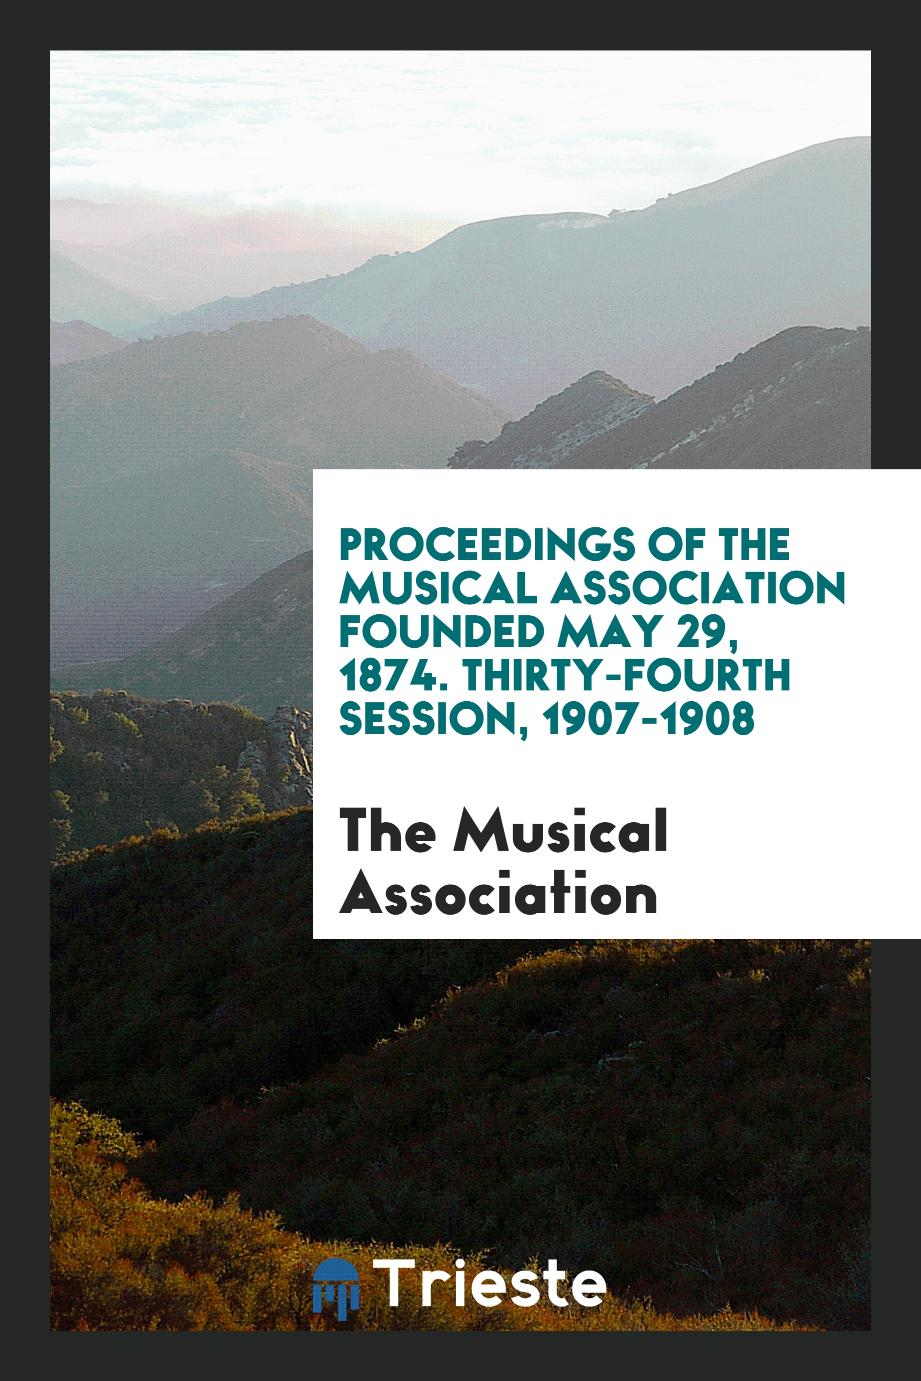 Proceedings of the Musical Association Founded May 29, 1874. Thirty-Fourth Session, 1907-1908